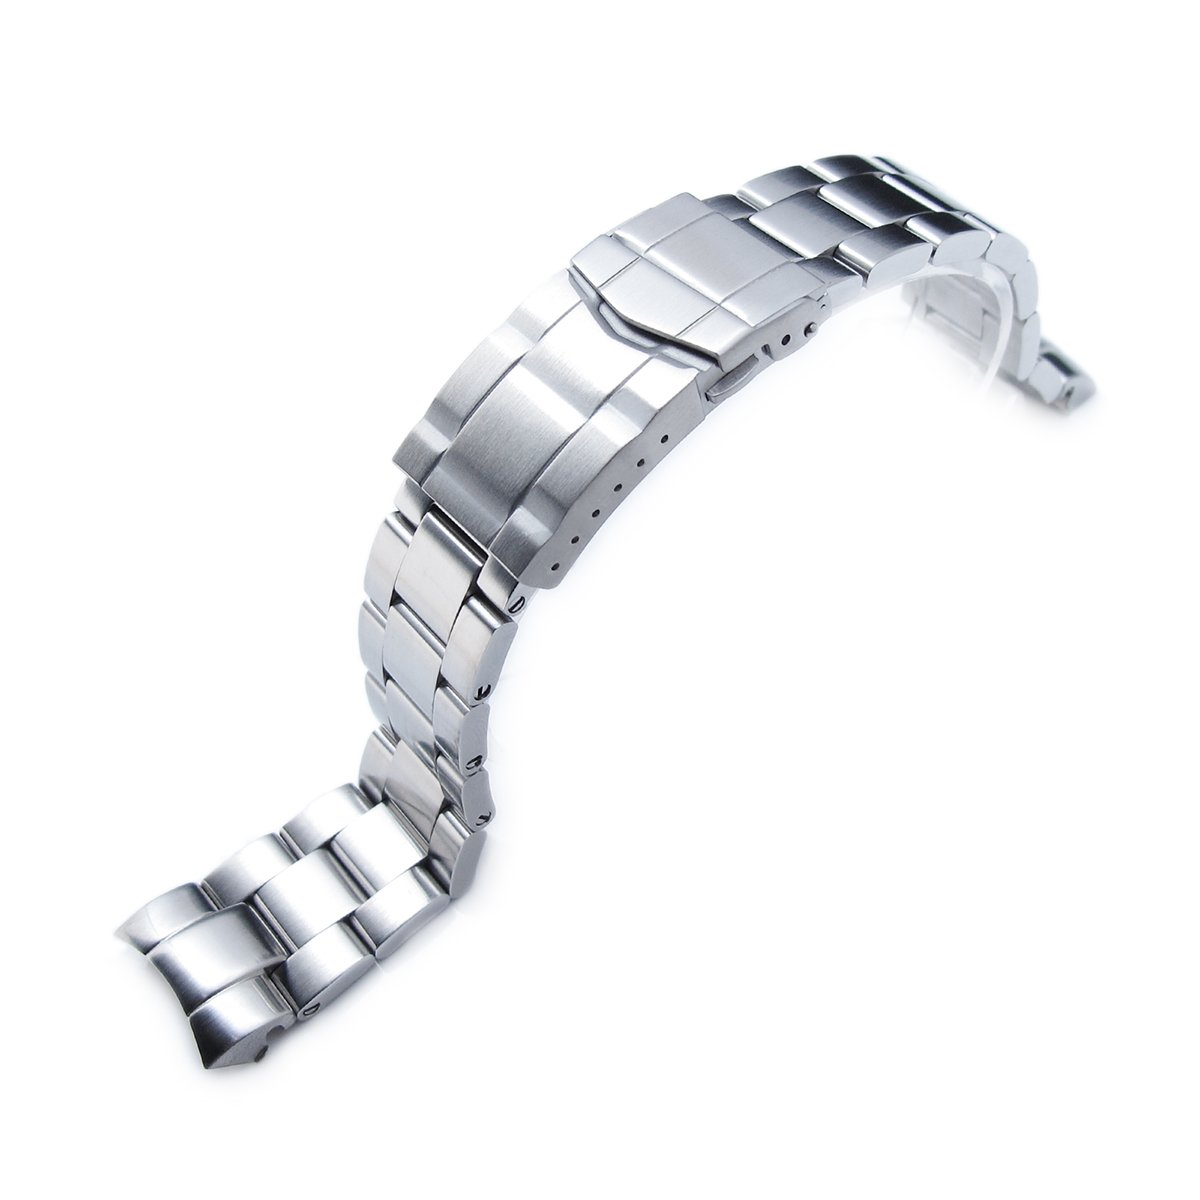 20mm Super Oyster Watch Band for Tudor Tiger 79260, 79270 or 79280, Submariner Clasp by Tudor Replacement by MiLTAT